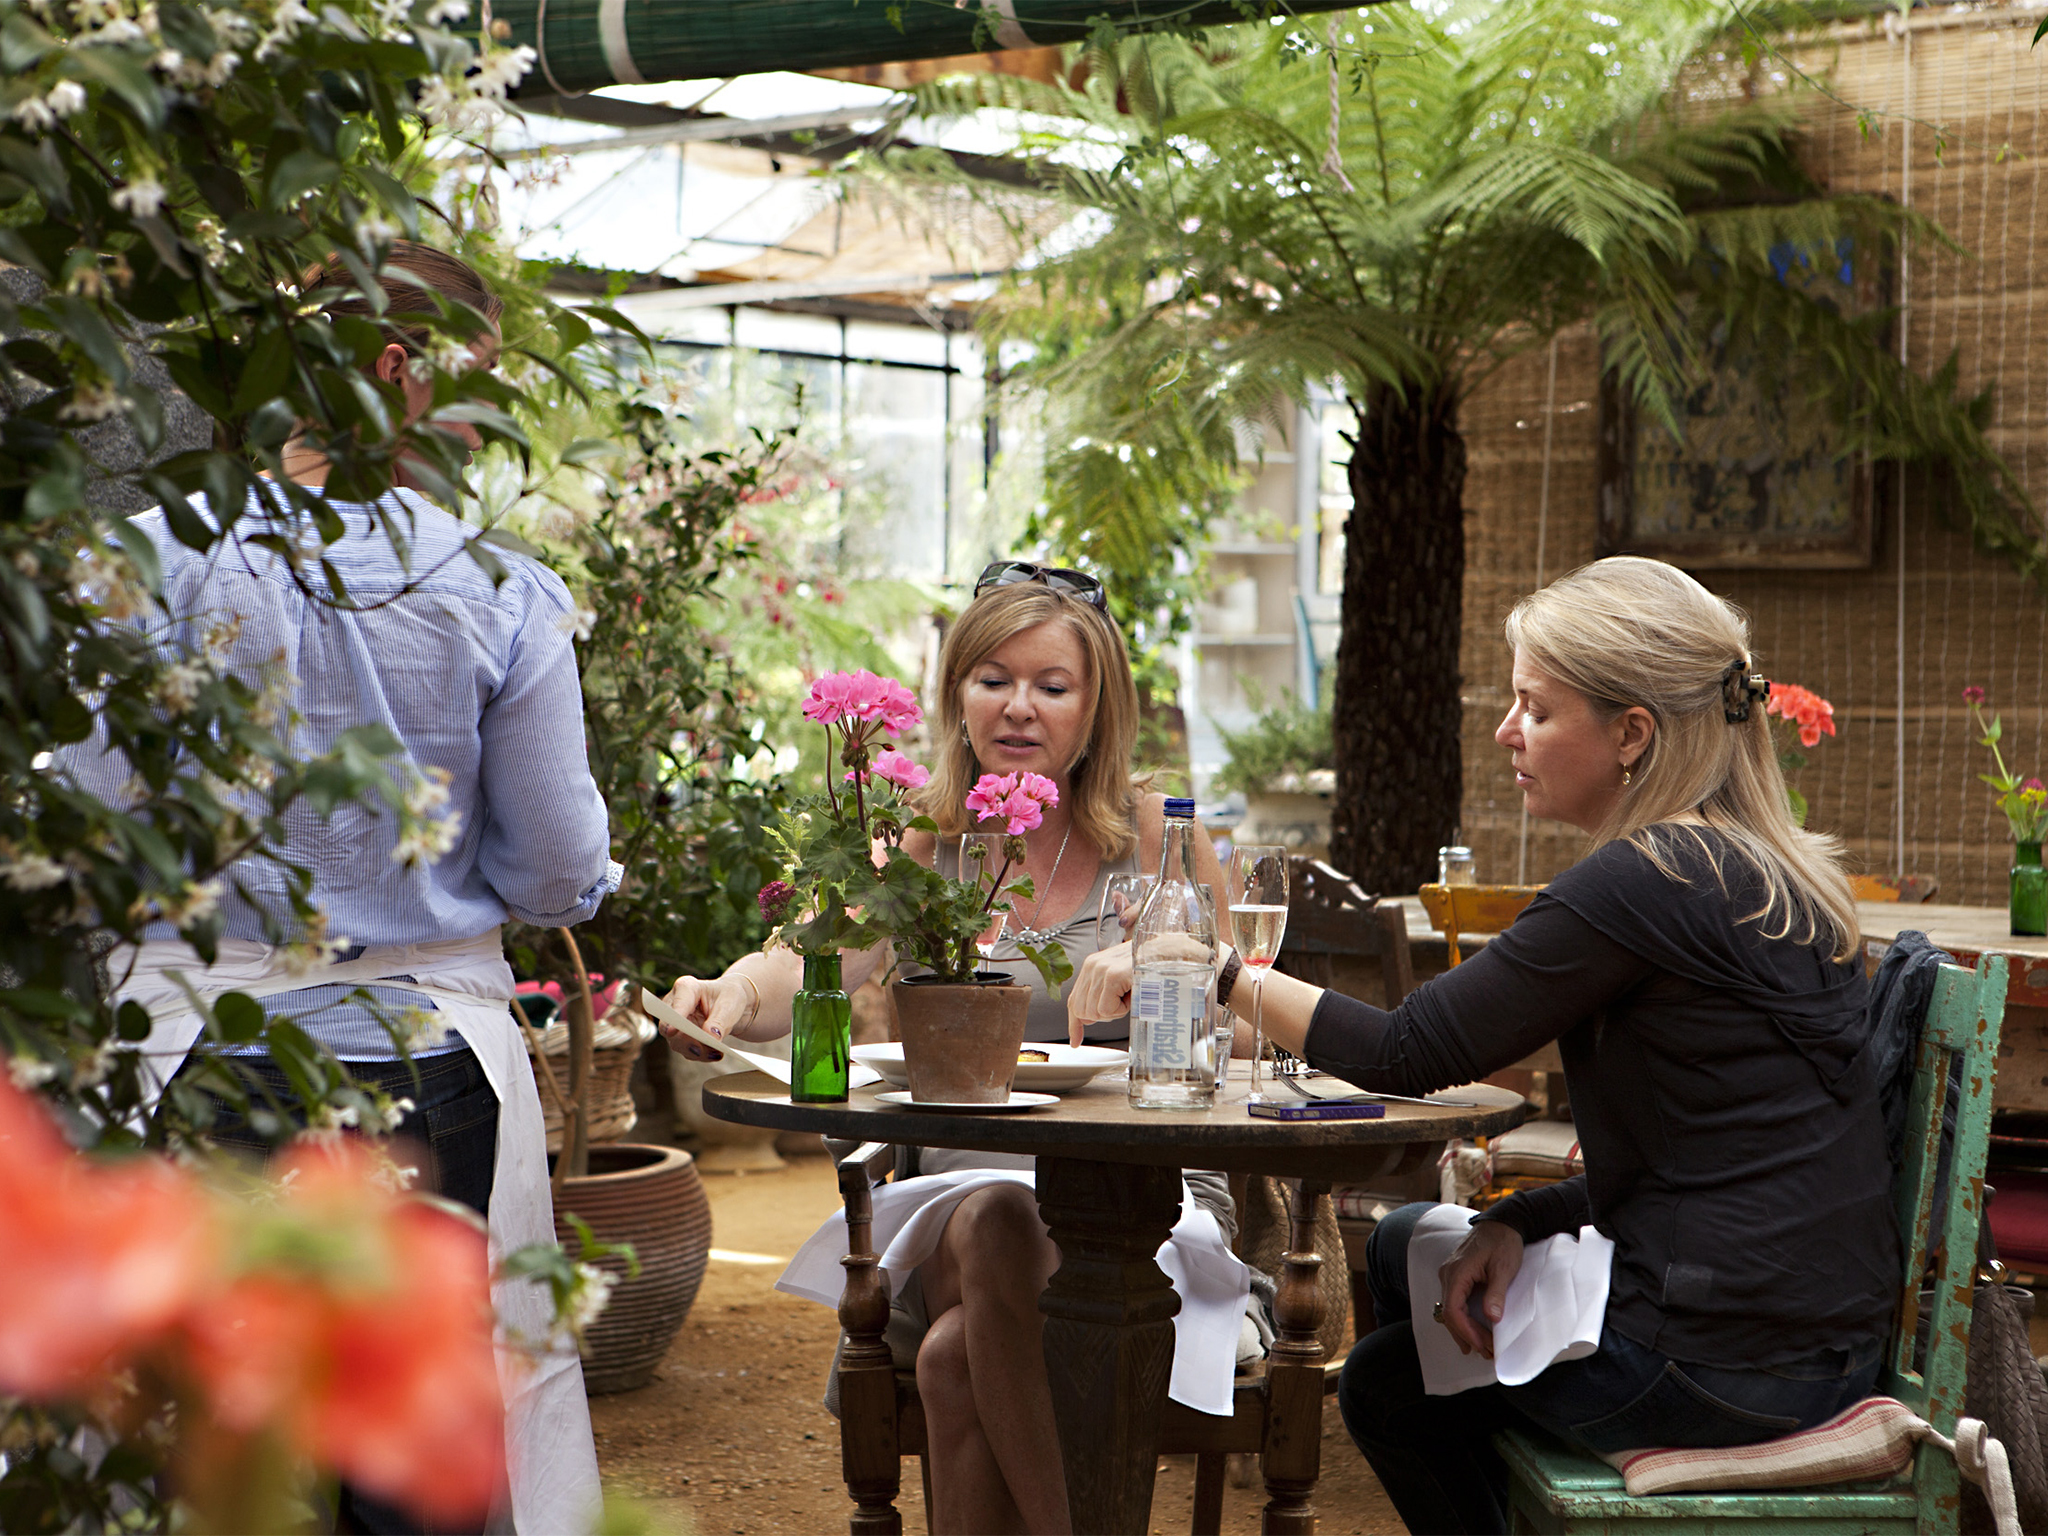 Petersham Nurseries Café